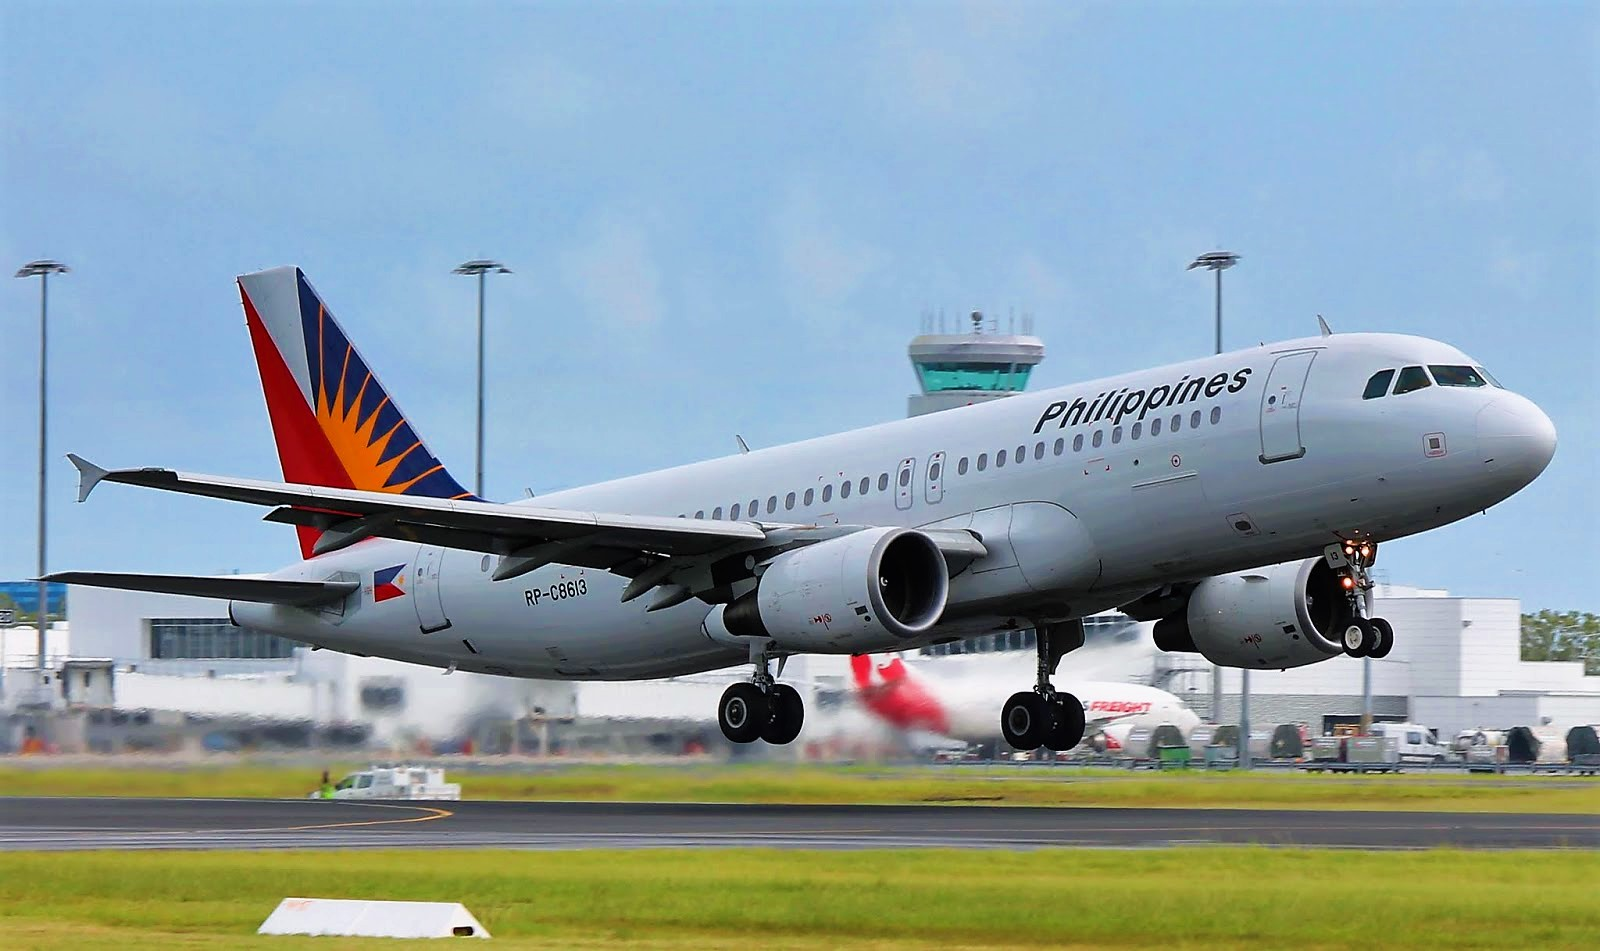 PAL offers discounted Manila-Dubai roundtrip tickets, other destinations